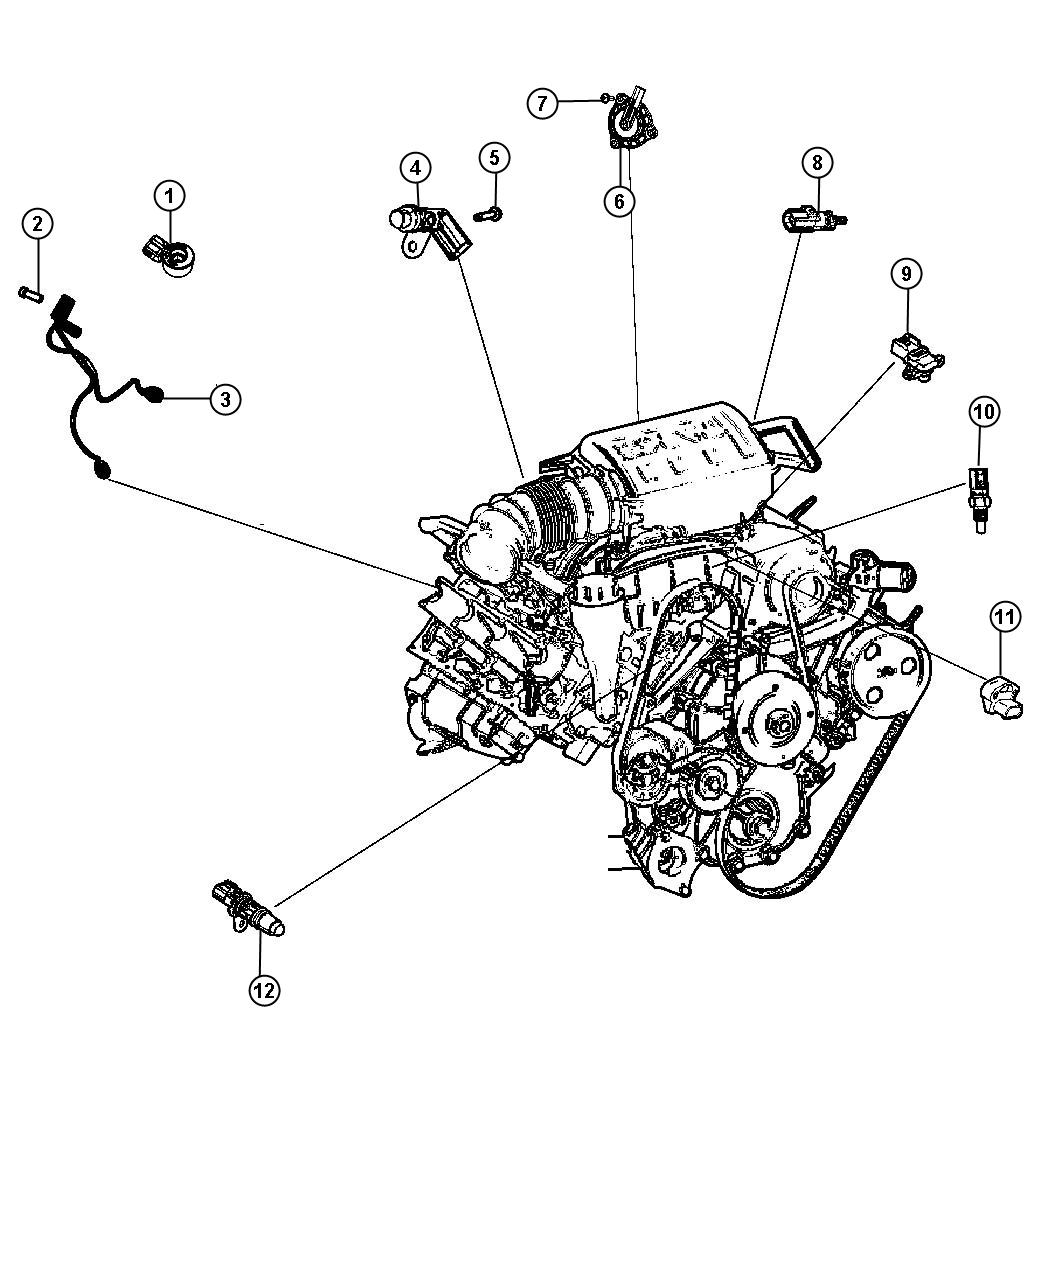 2 7 Chrysler Engine Starter Location Diagram